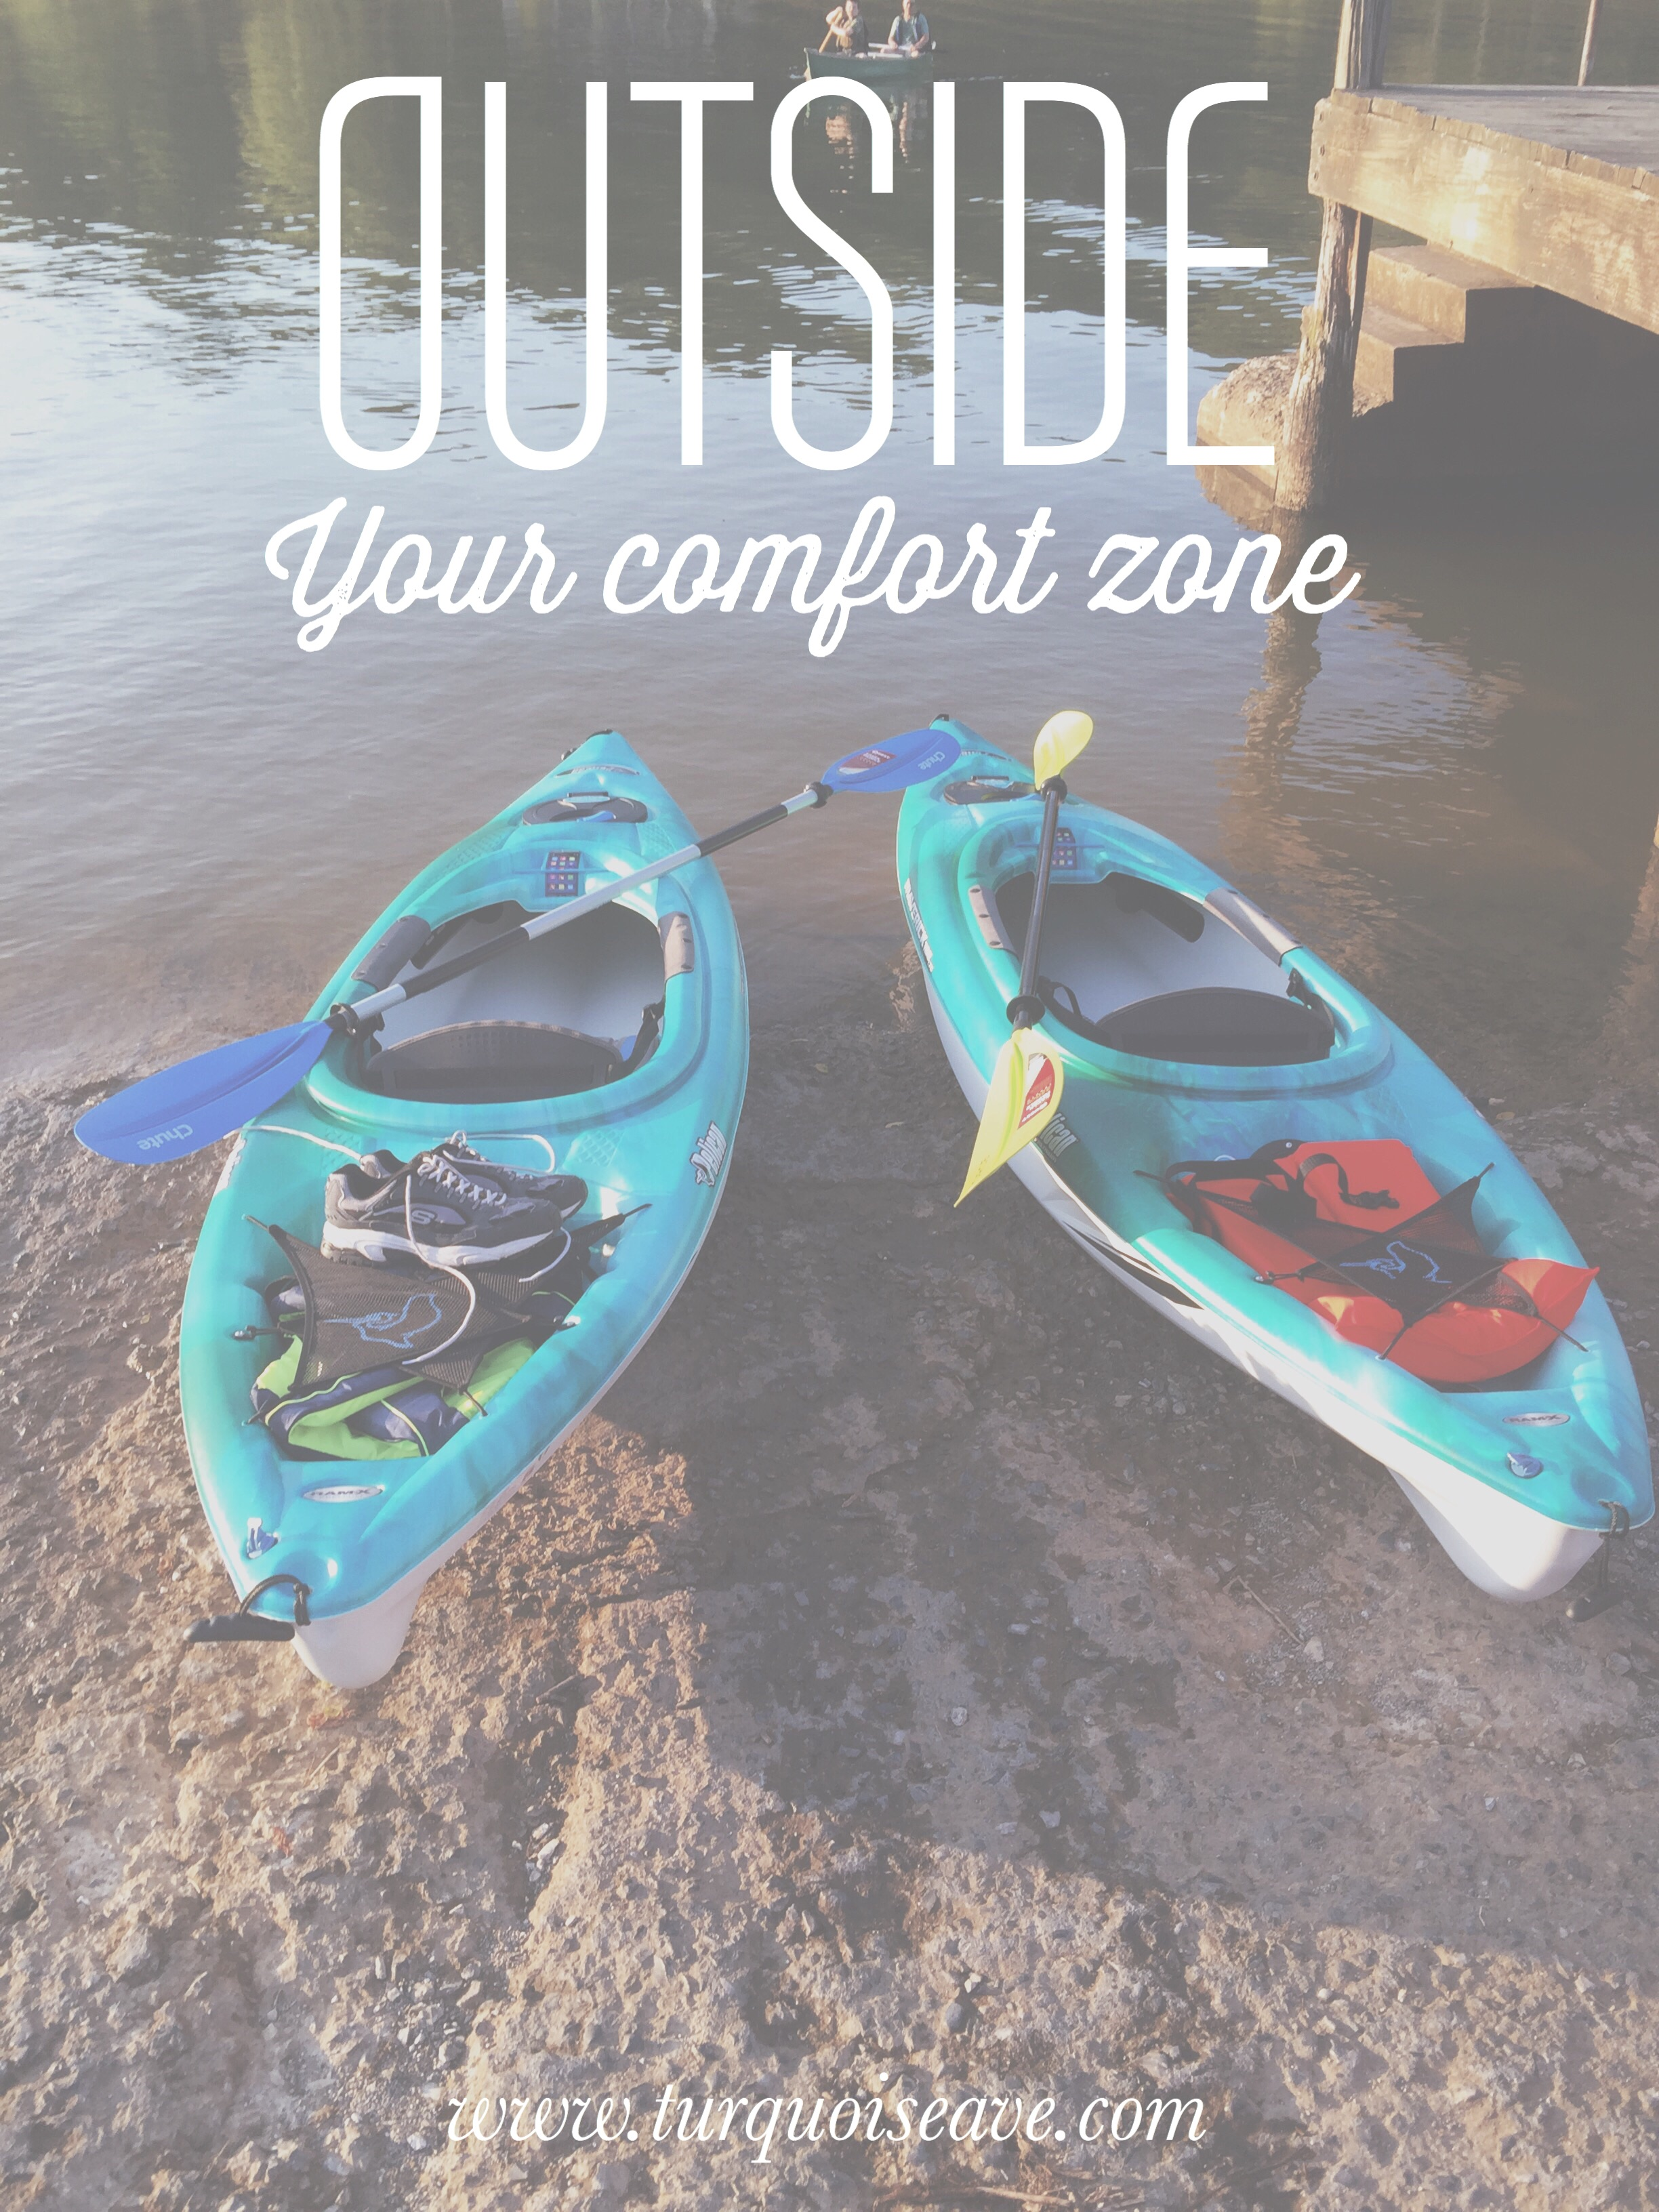 Try new things! Try things outside of your comfort zone - positive daily living tips from lifestyle blog Turquoise Avenue! www.turquoiseave.com